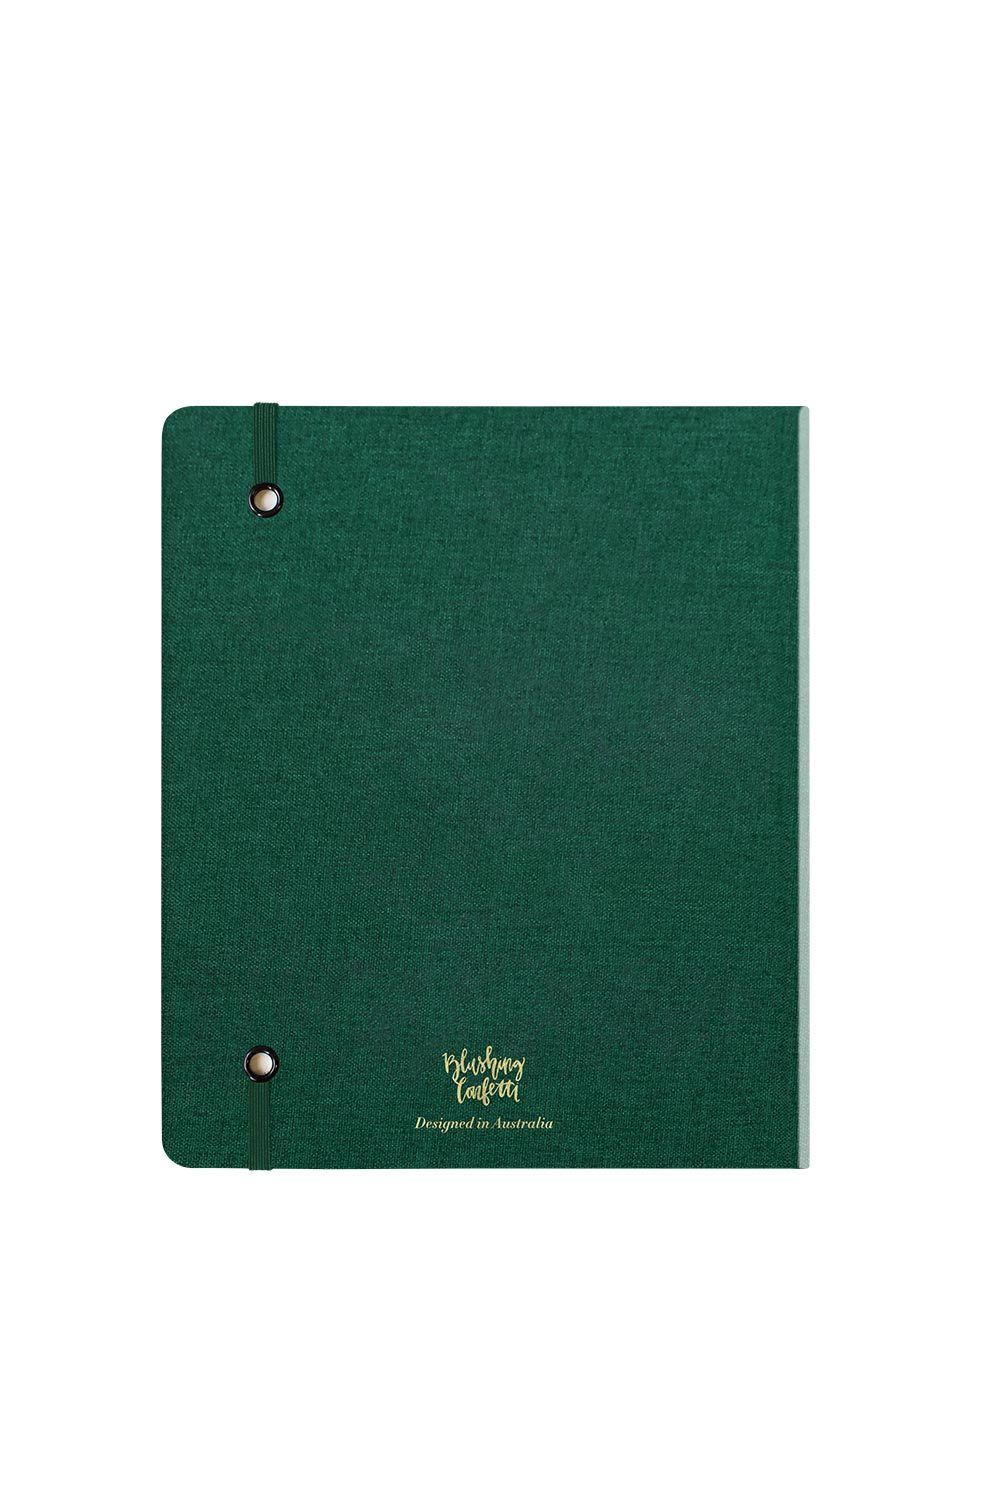 Where to Today - Forest Green Linen Weekly Planner 2020